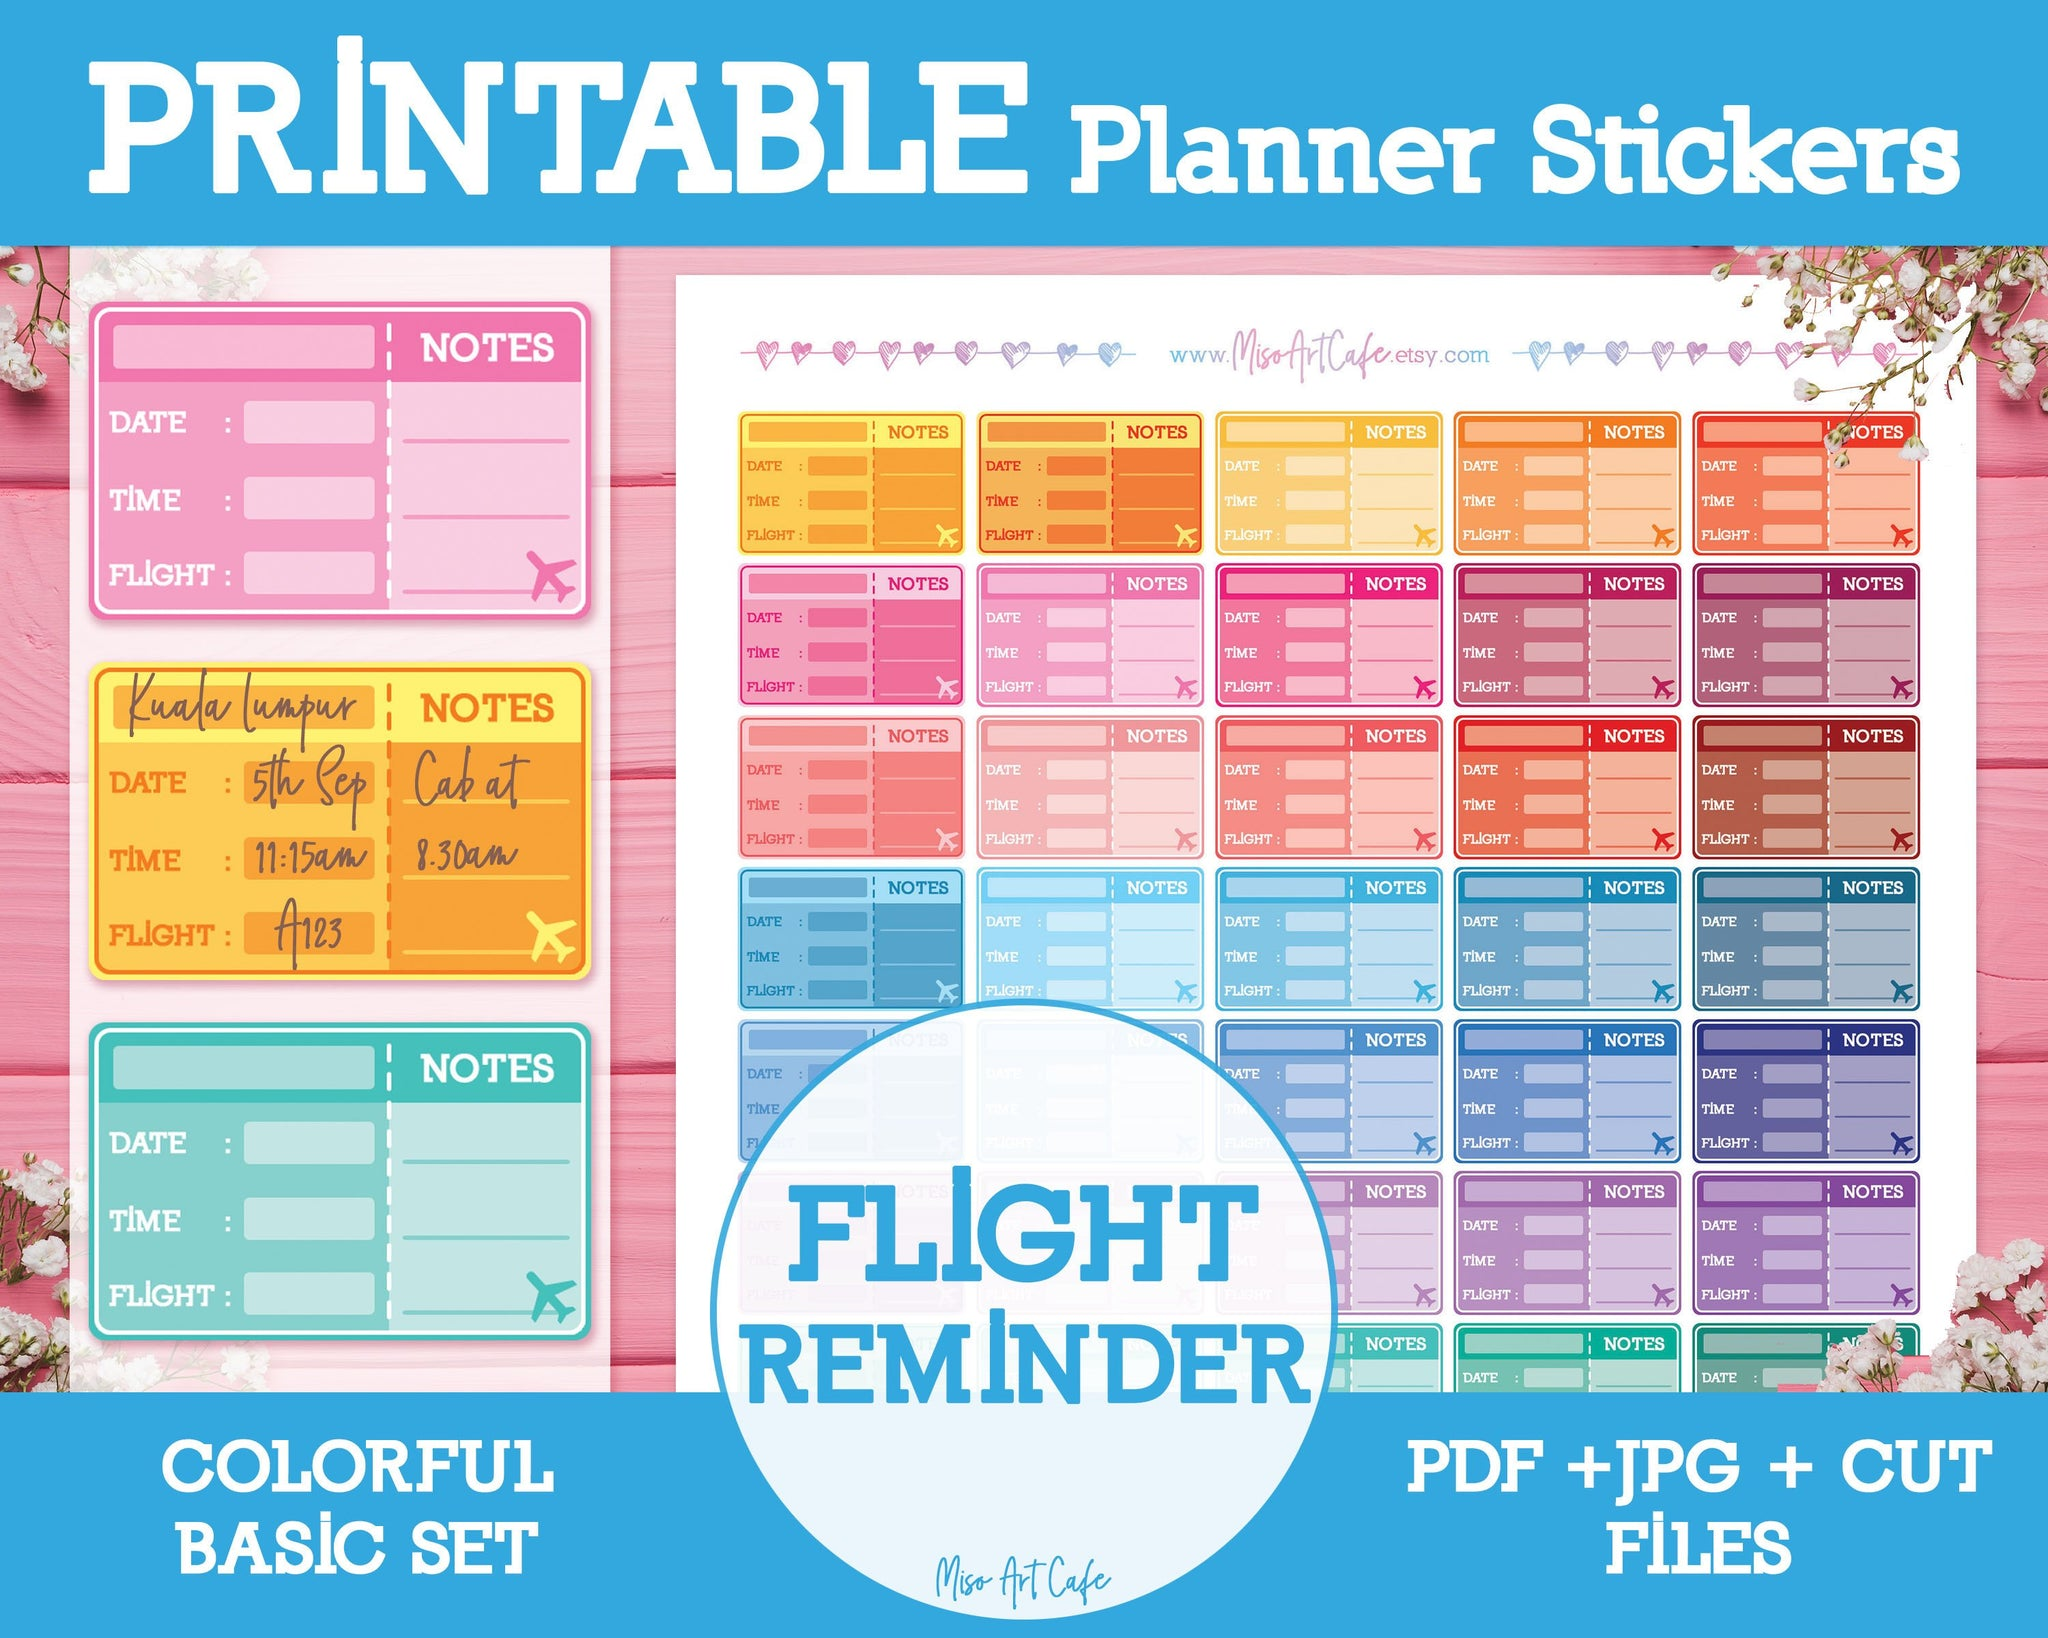 Printable Flight Reminders - Colorful Basic Planner Stickers - Miso Art Cafe